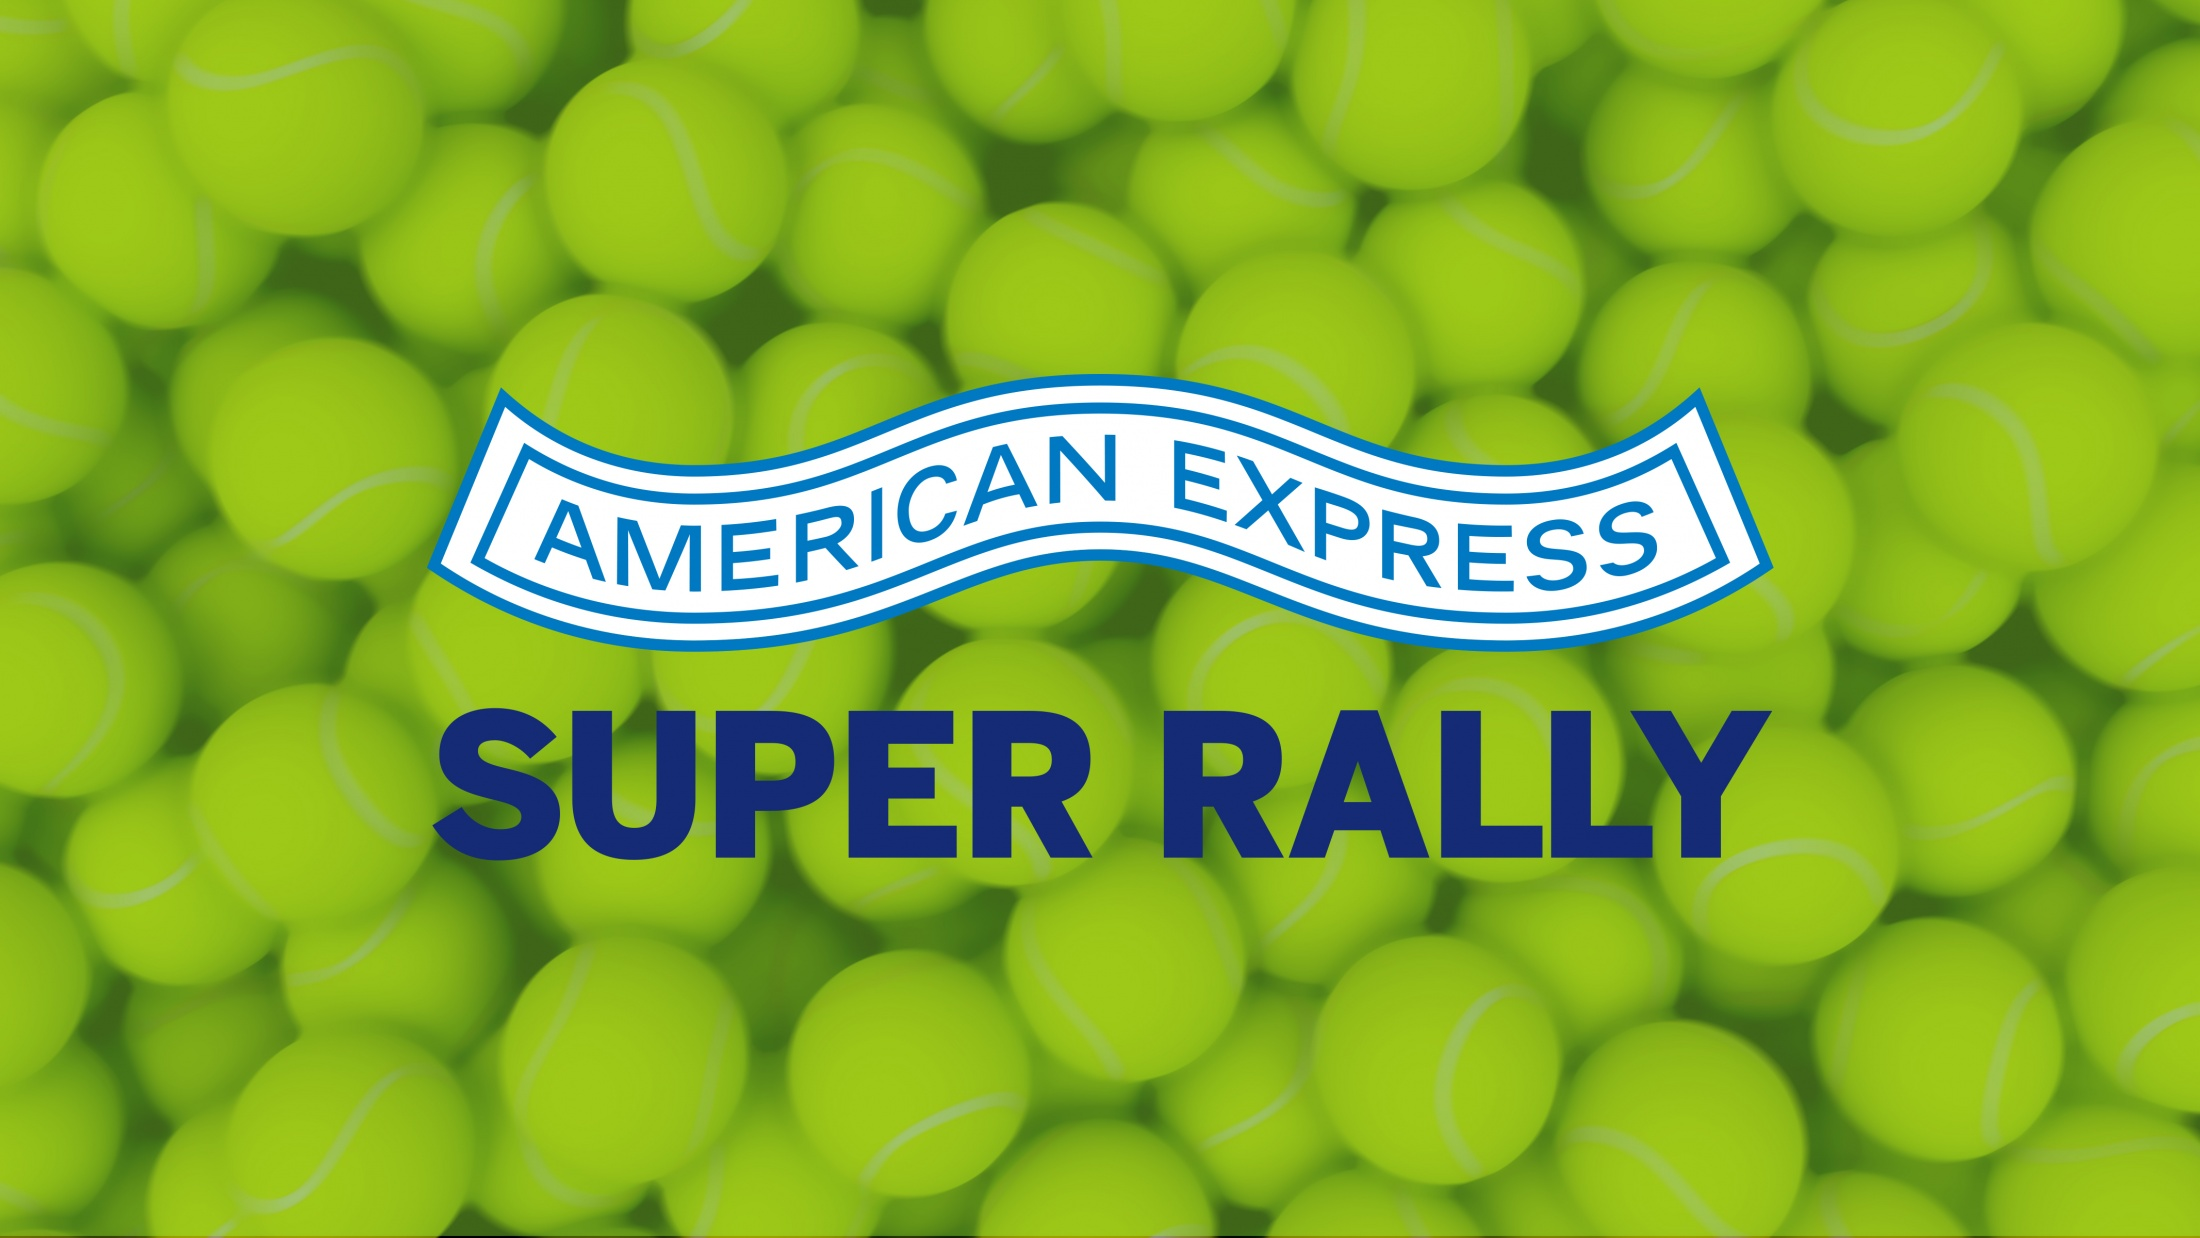 Image Media for American Express Super Rally